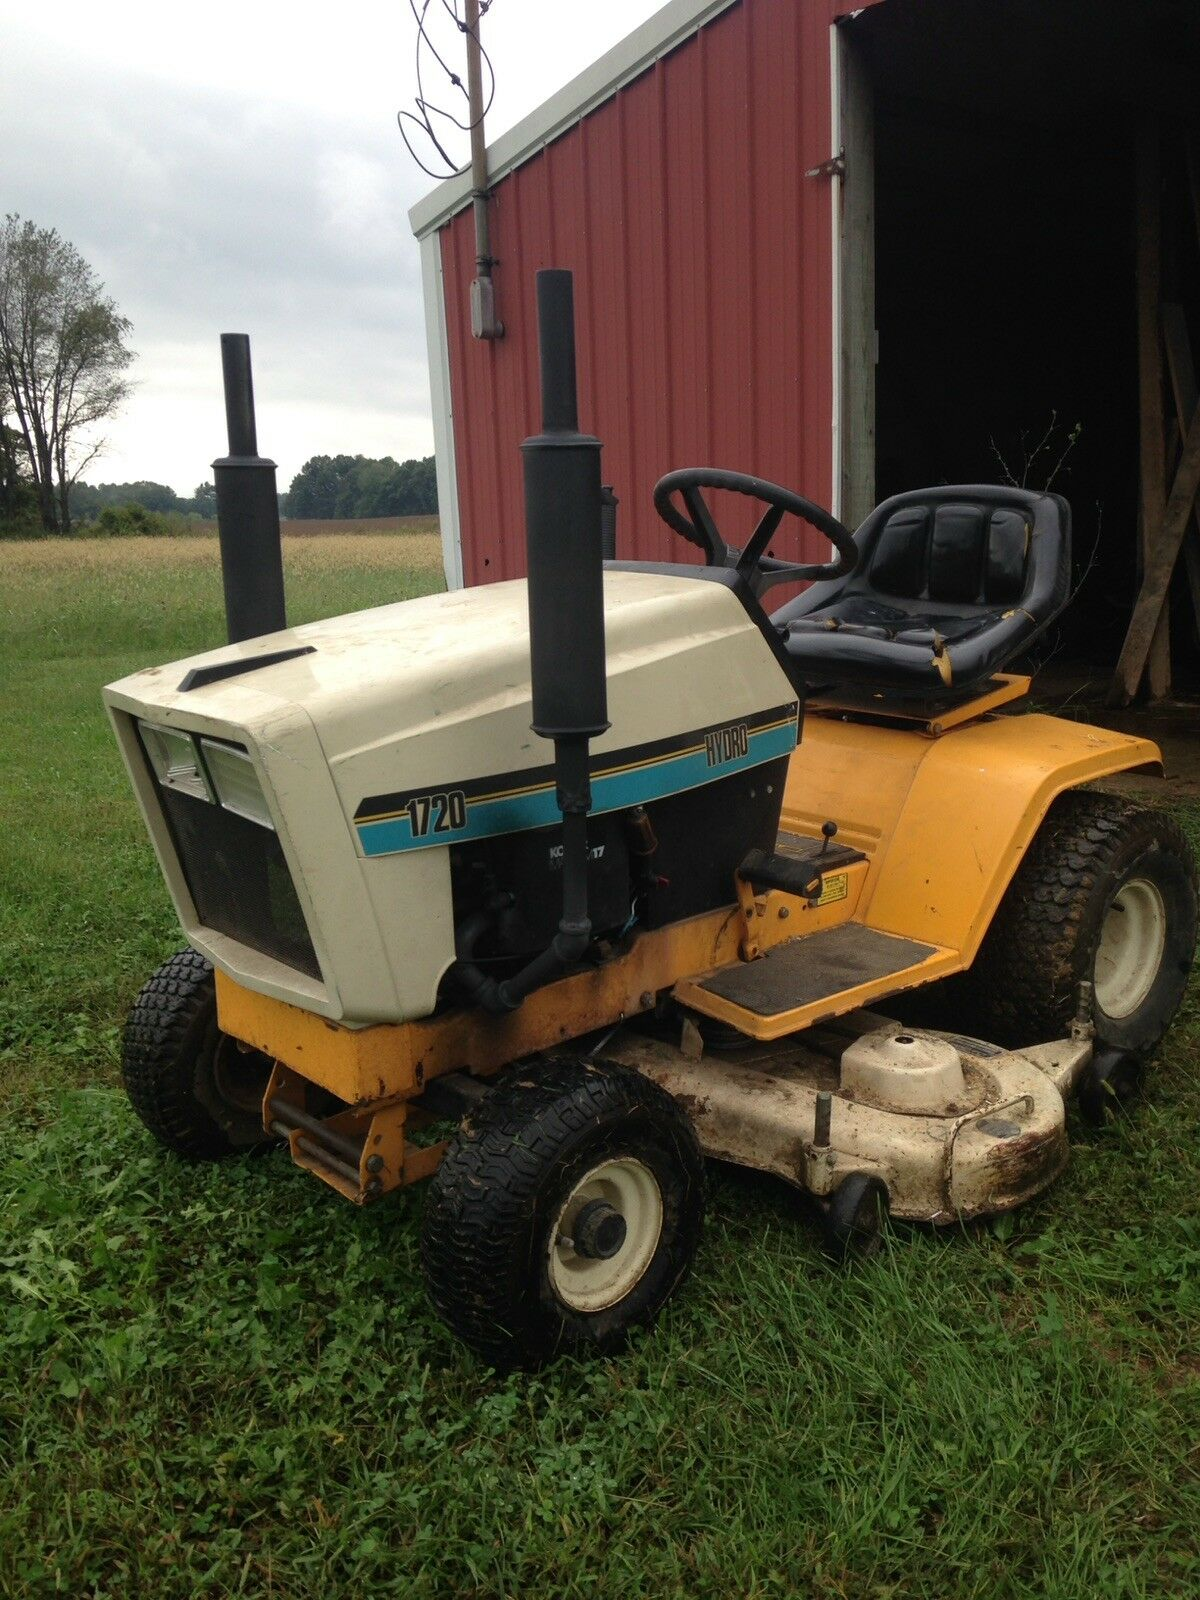 Cub Cadet 1720 Riding Mower Garden Tractor 1 of 6 See More